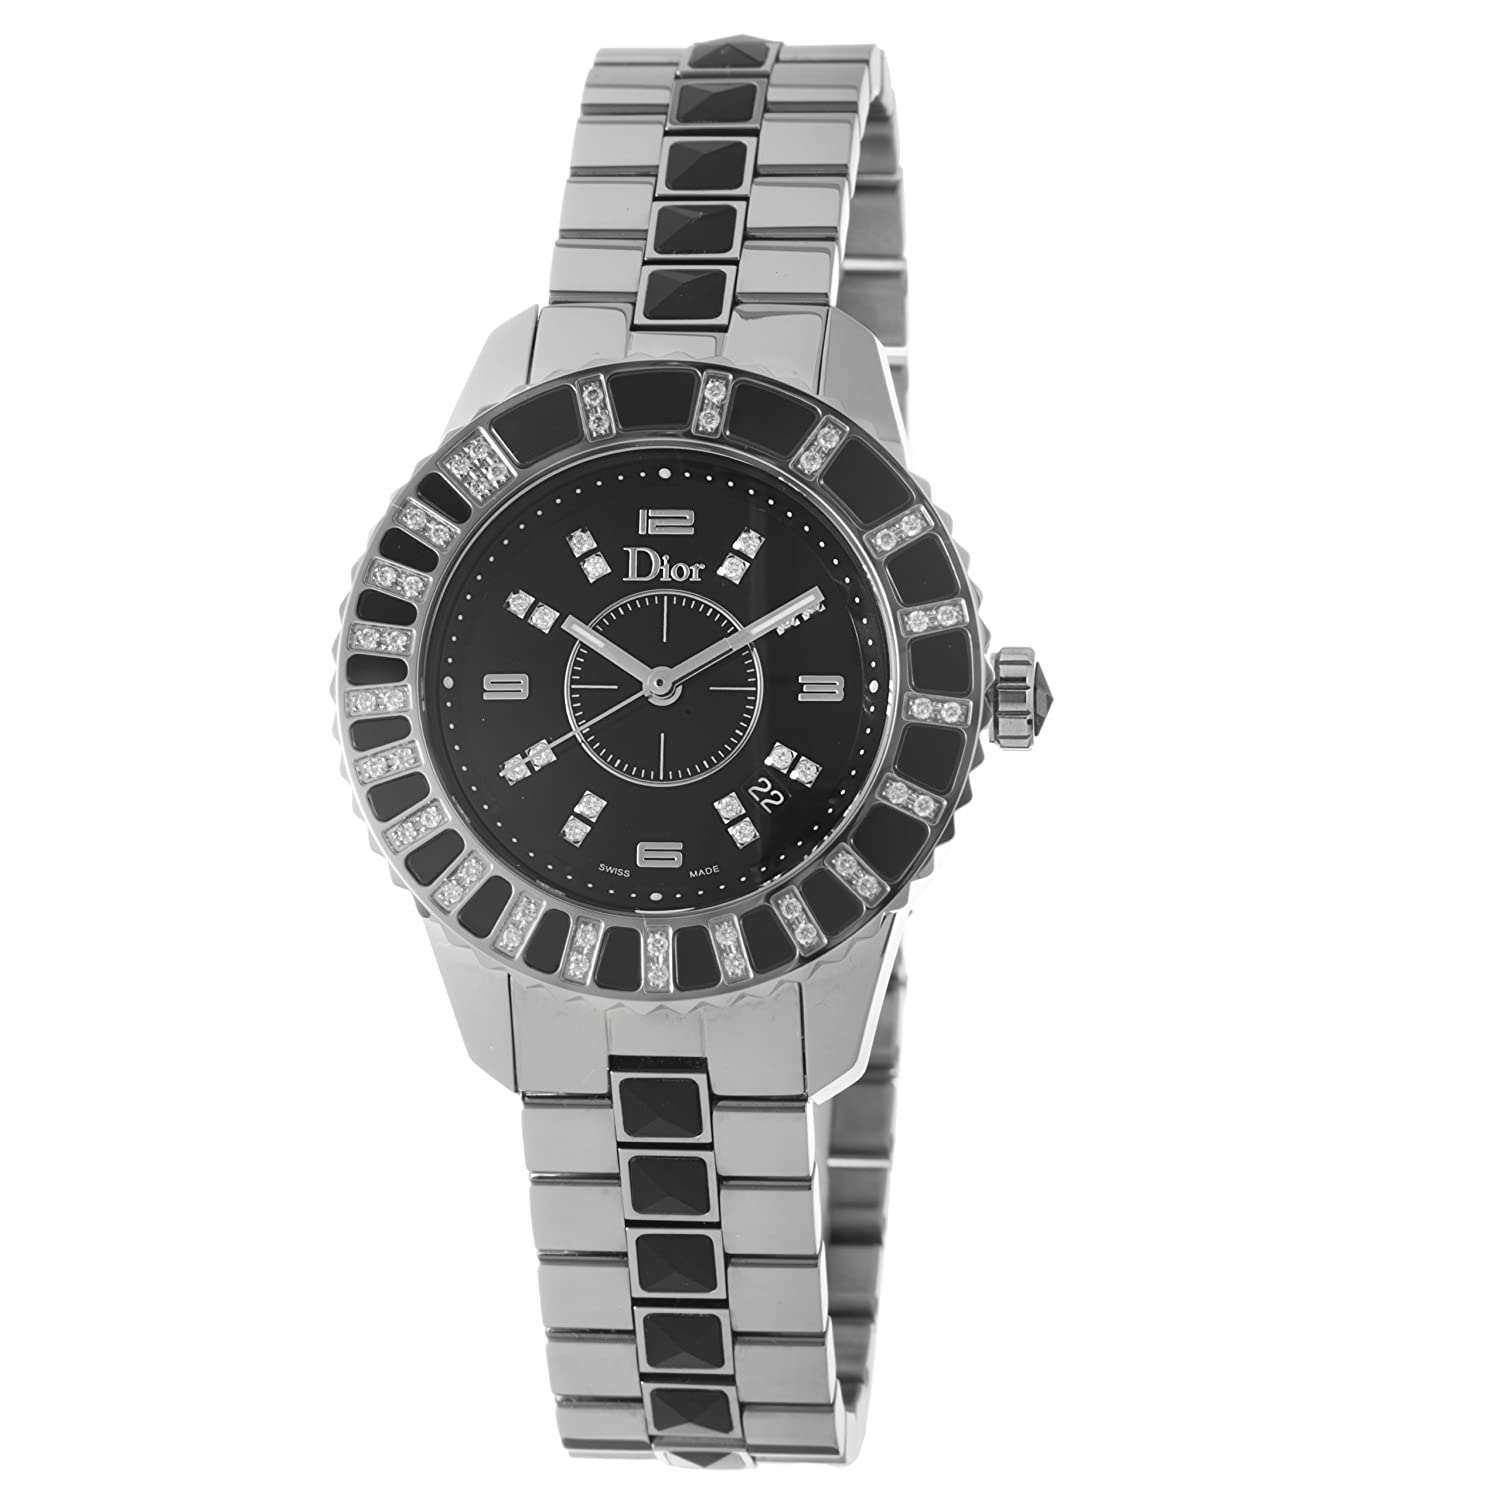 Christian dior christal diamond accented black dial women 39 s watch cd113115 new ebay for Christian dior watches